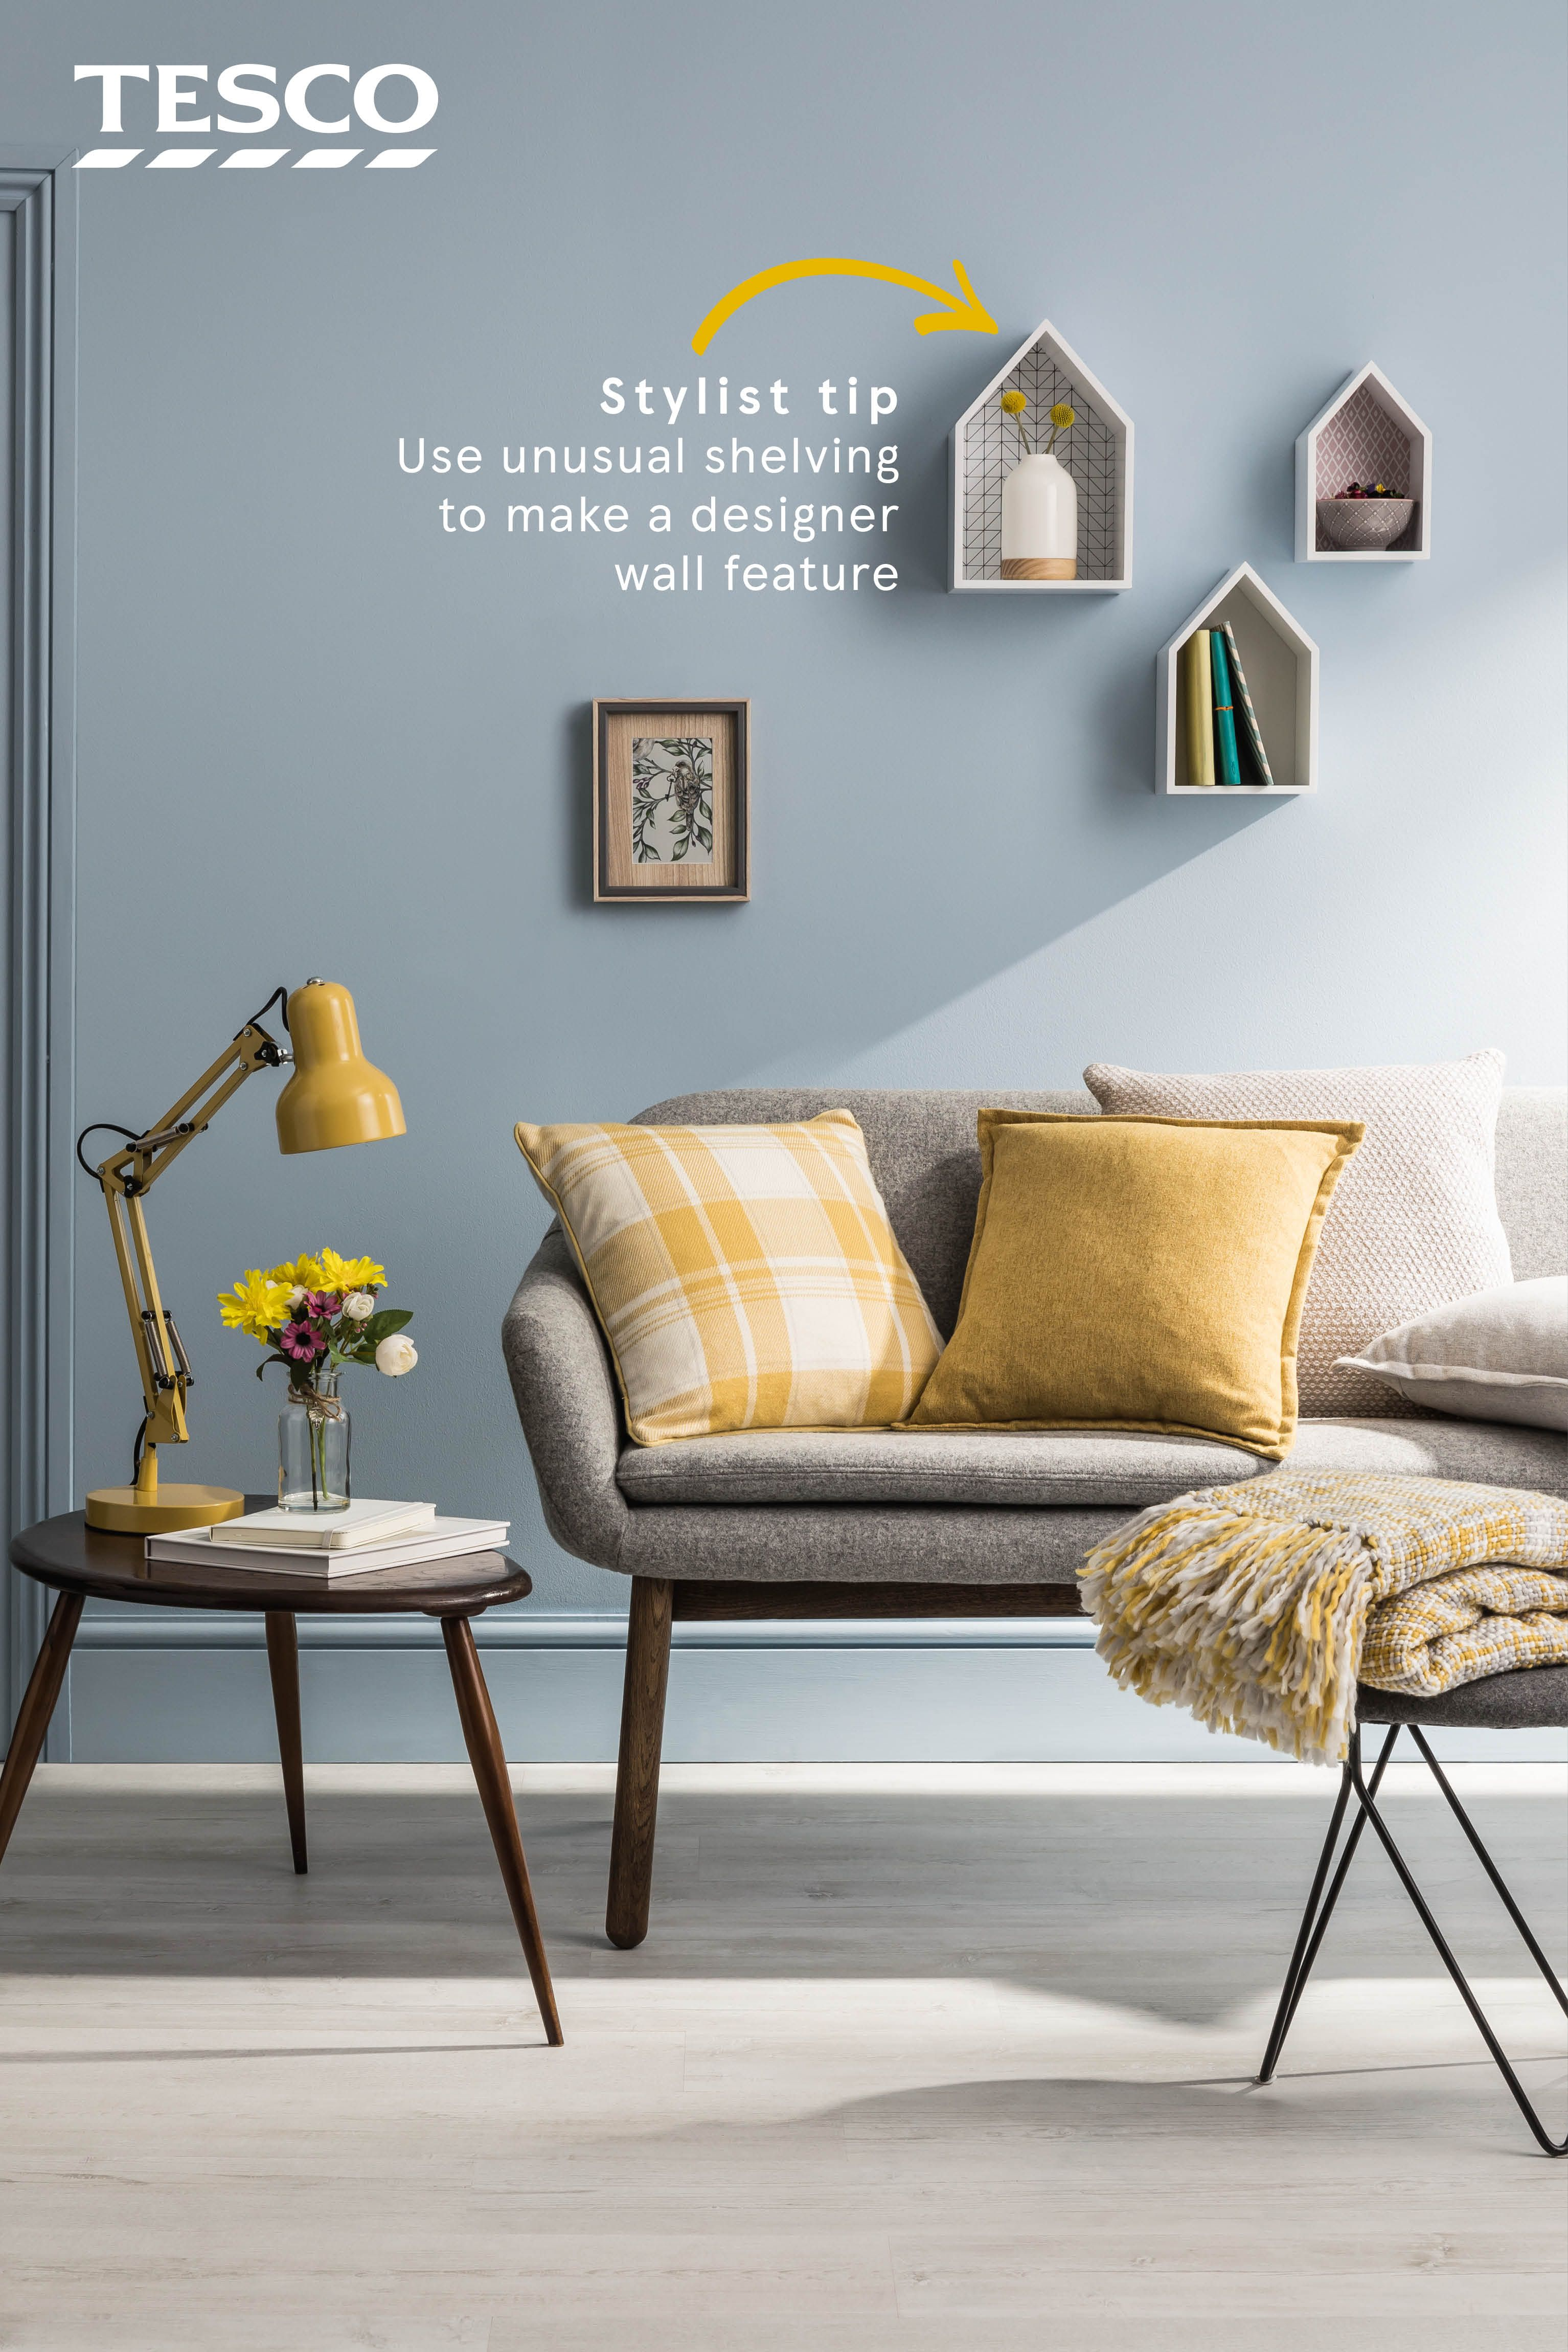 Looking for some colourful living room accessories to brighten up